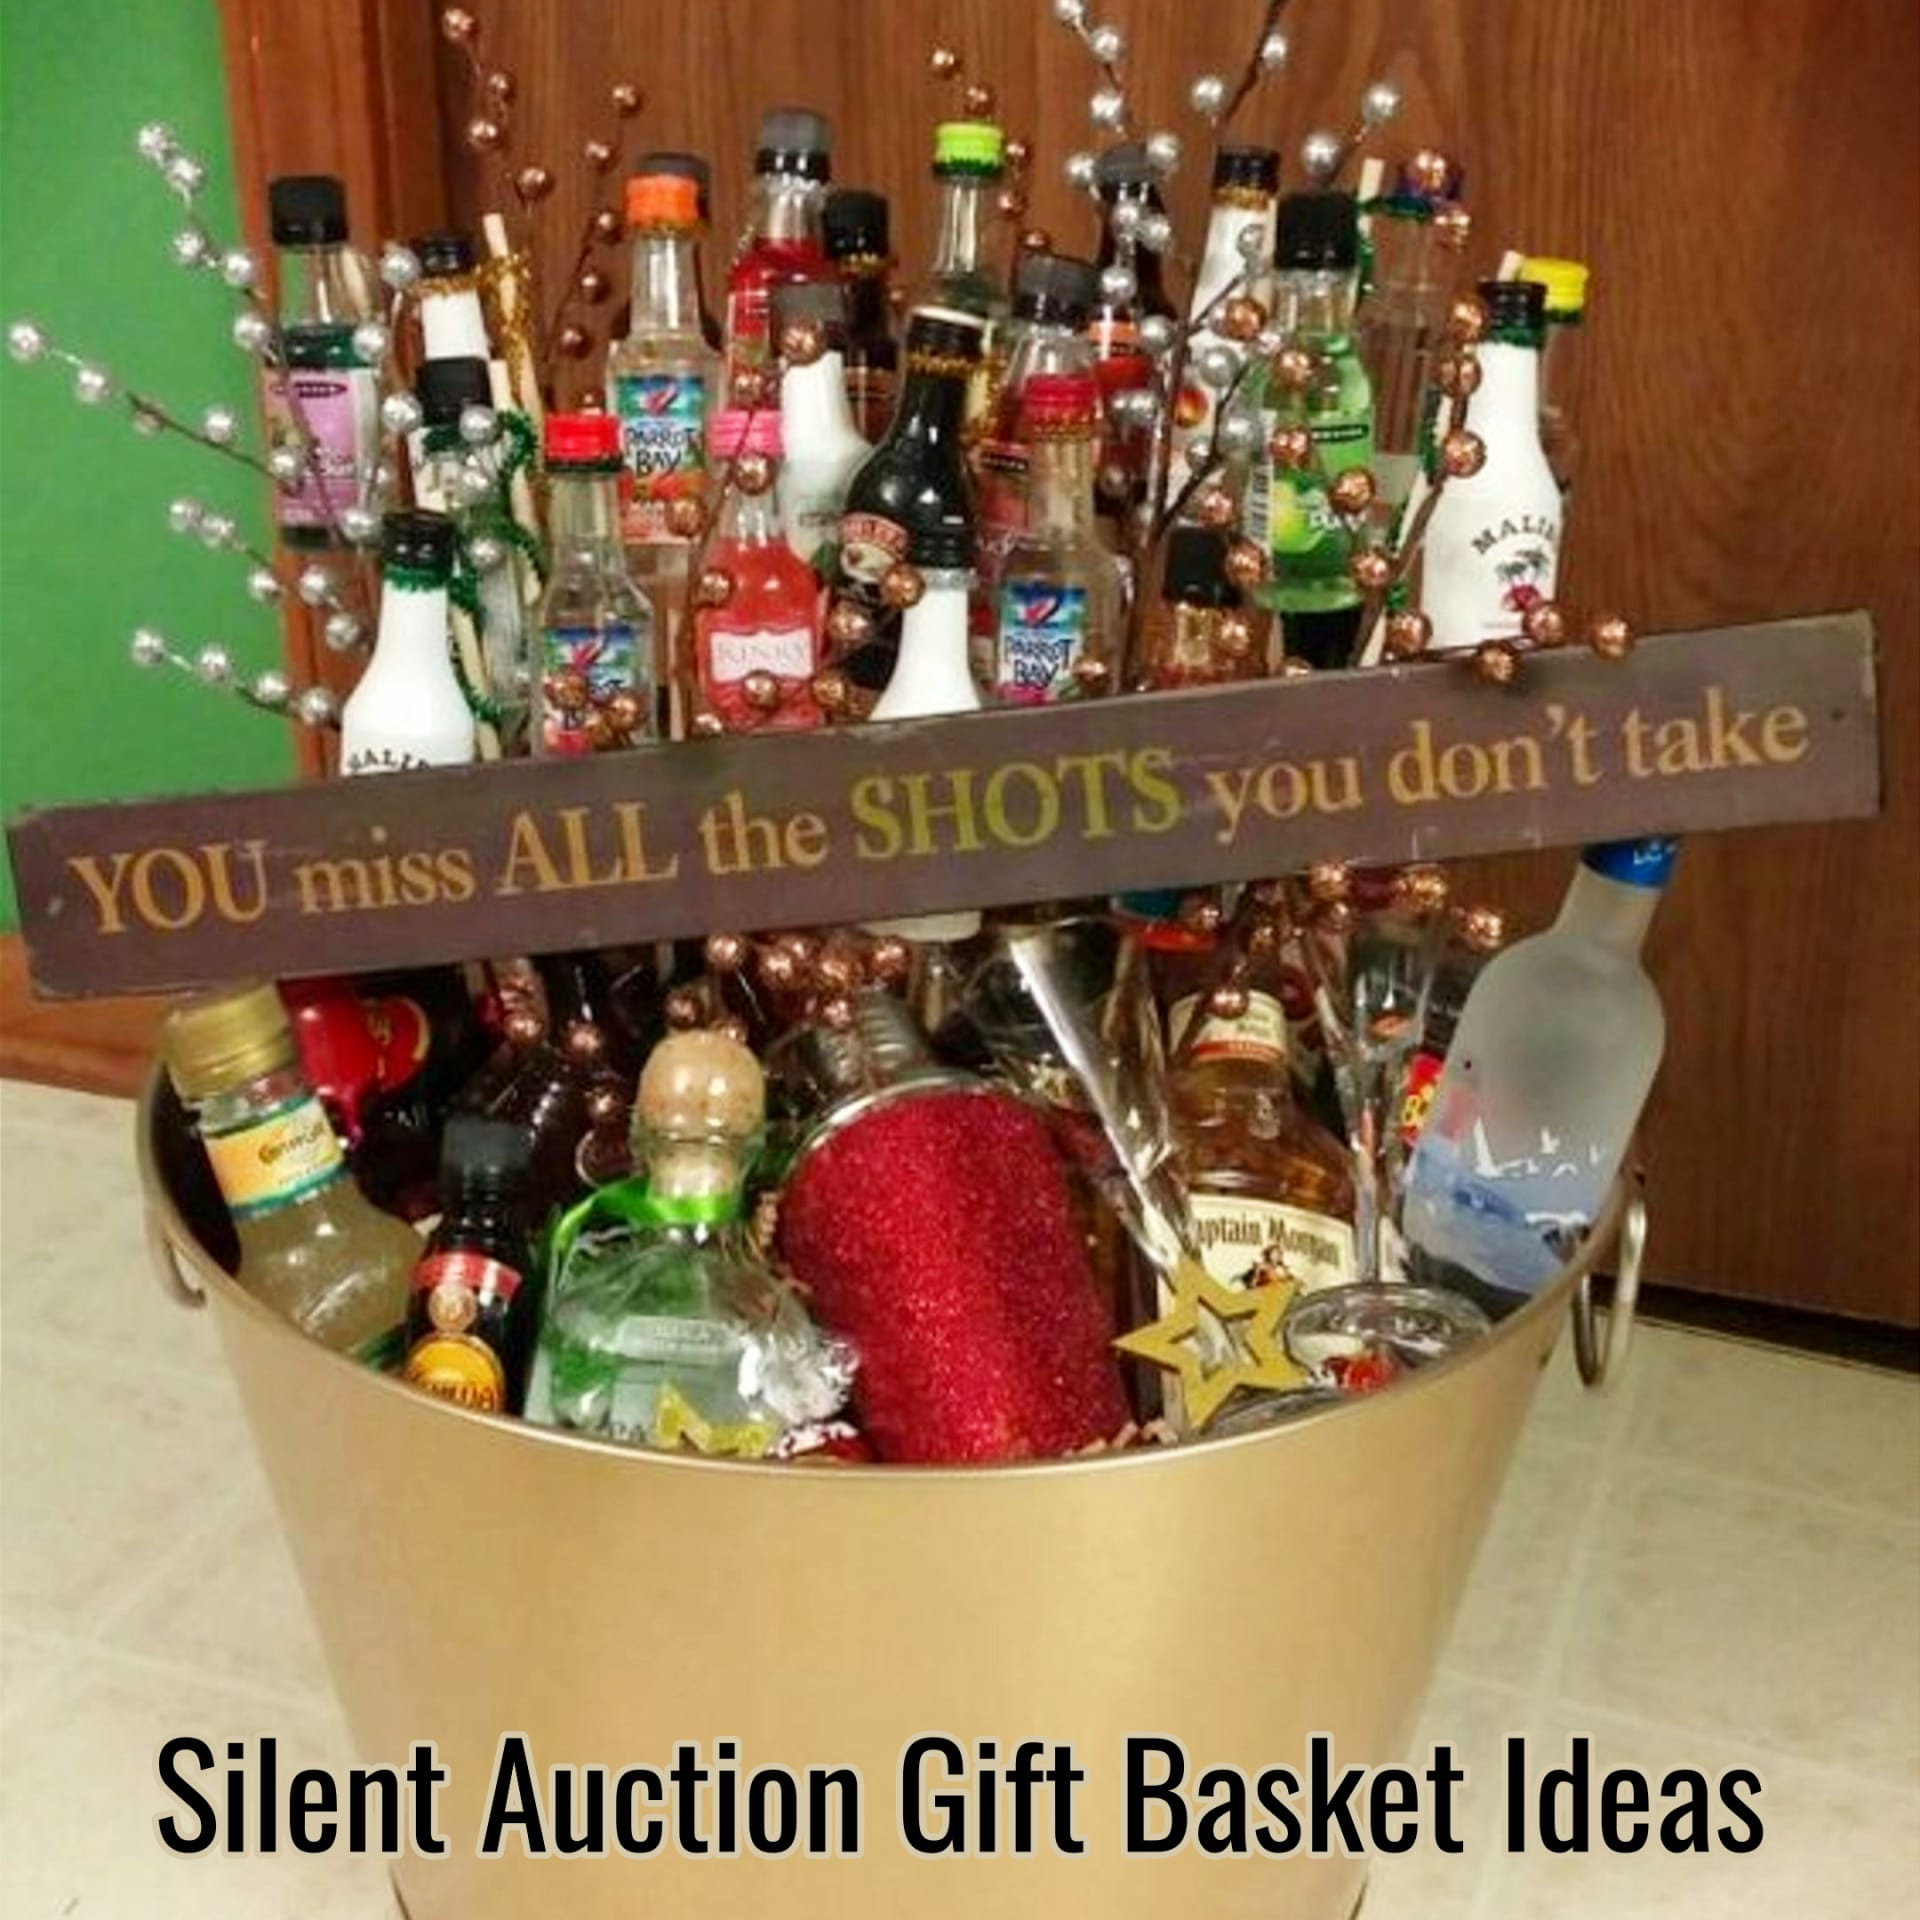 Gift Basket Ideas For Silent Auction Fundraiser  Creative Raffle Basket Ideas for a Charity School or